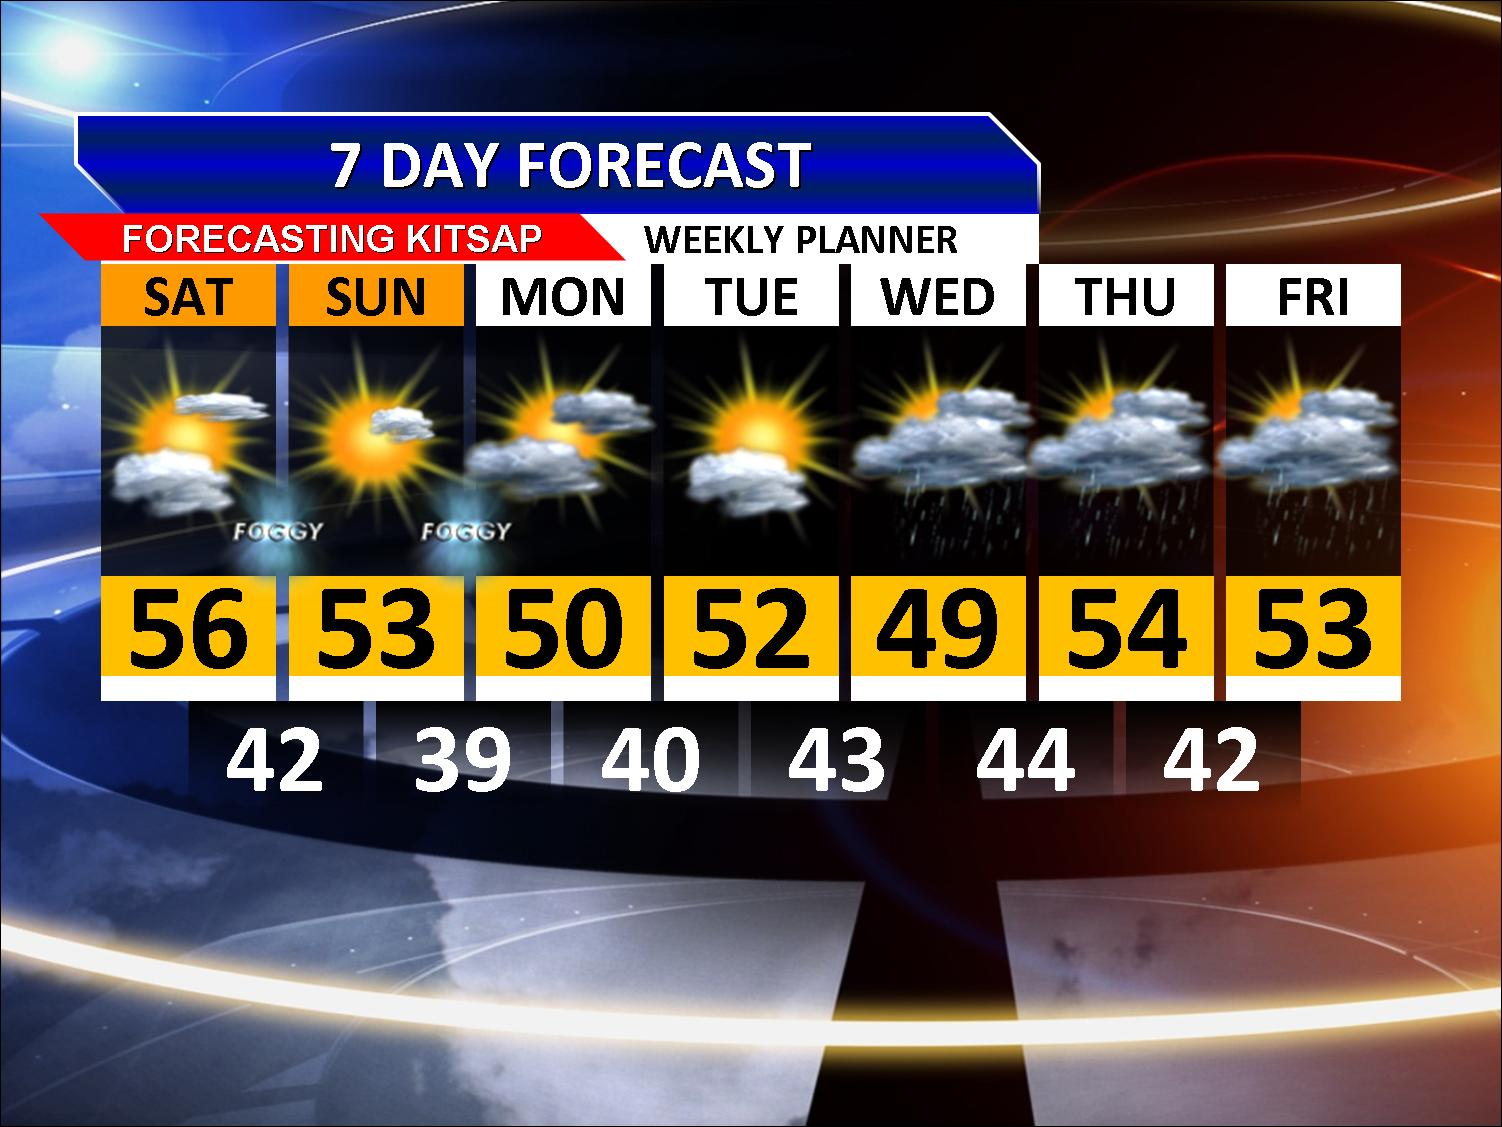 7 Day Forecast Post To Twitter